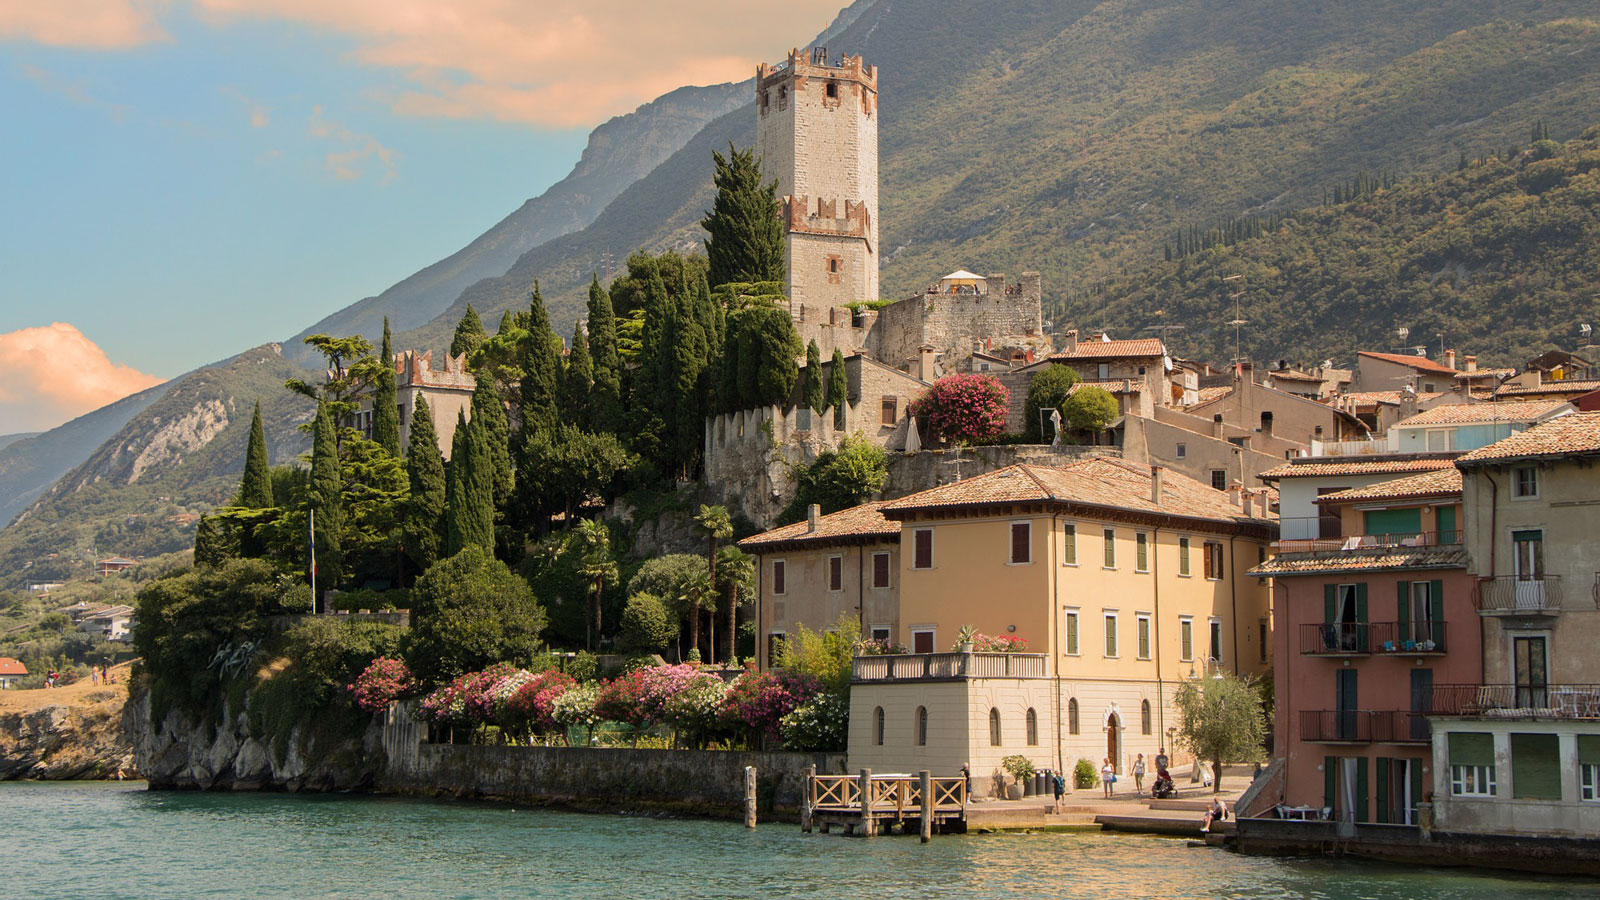 Italian castle and town by water